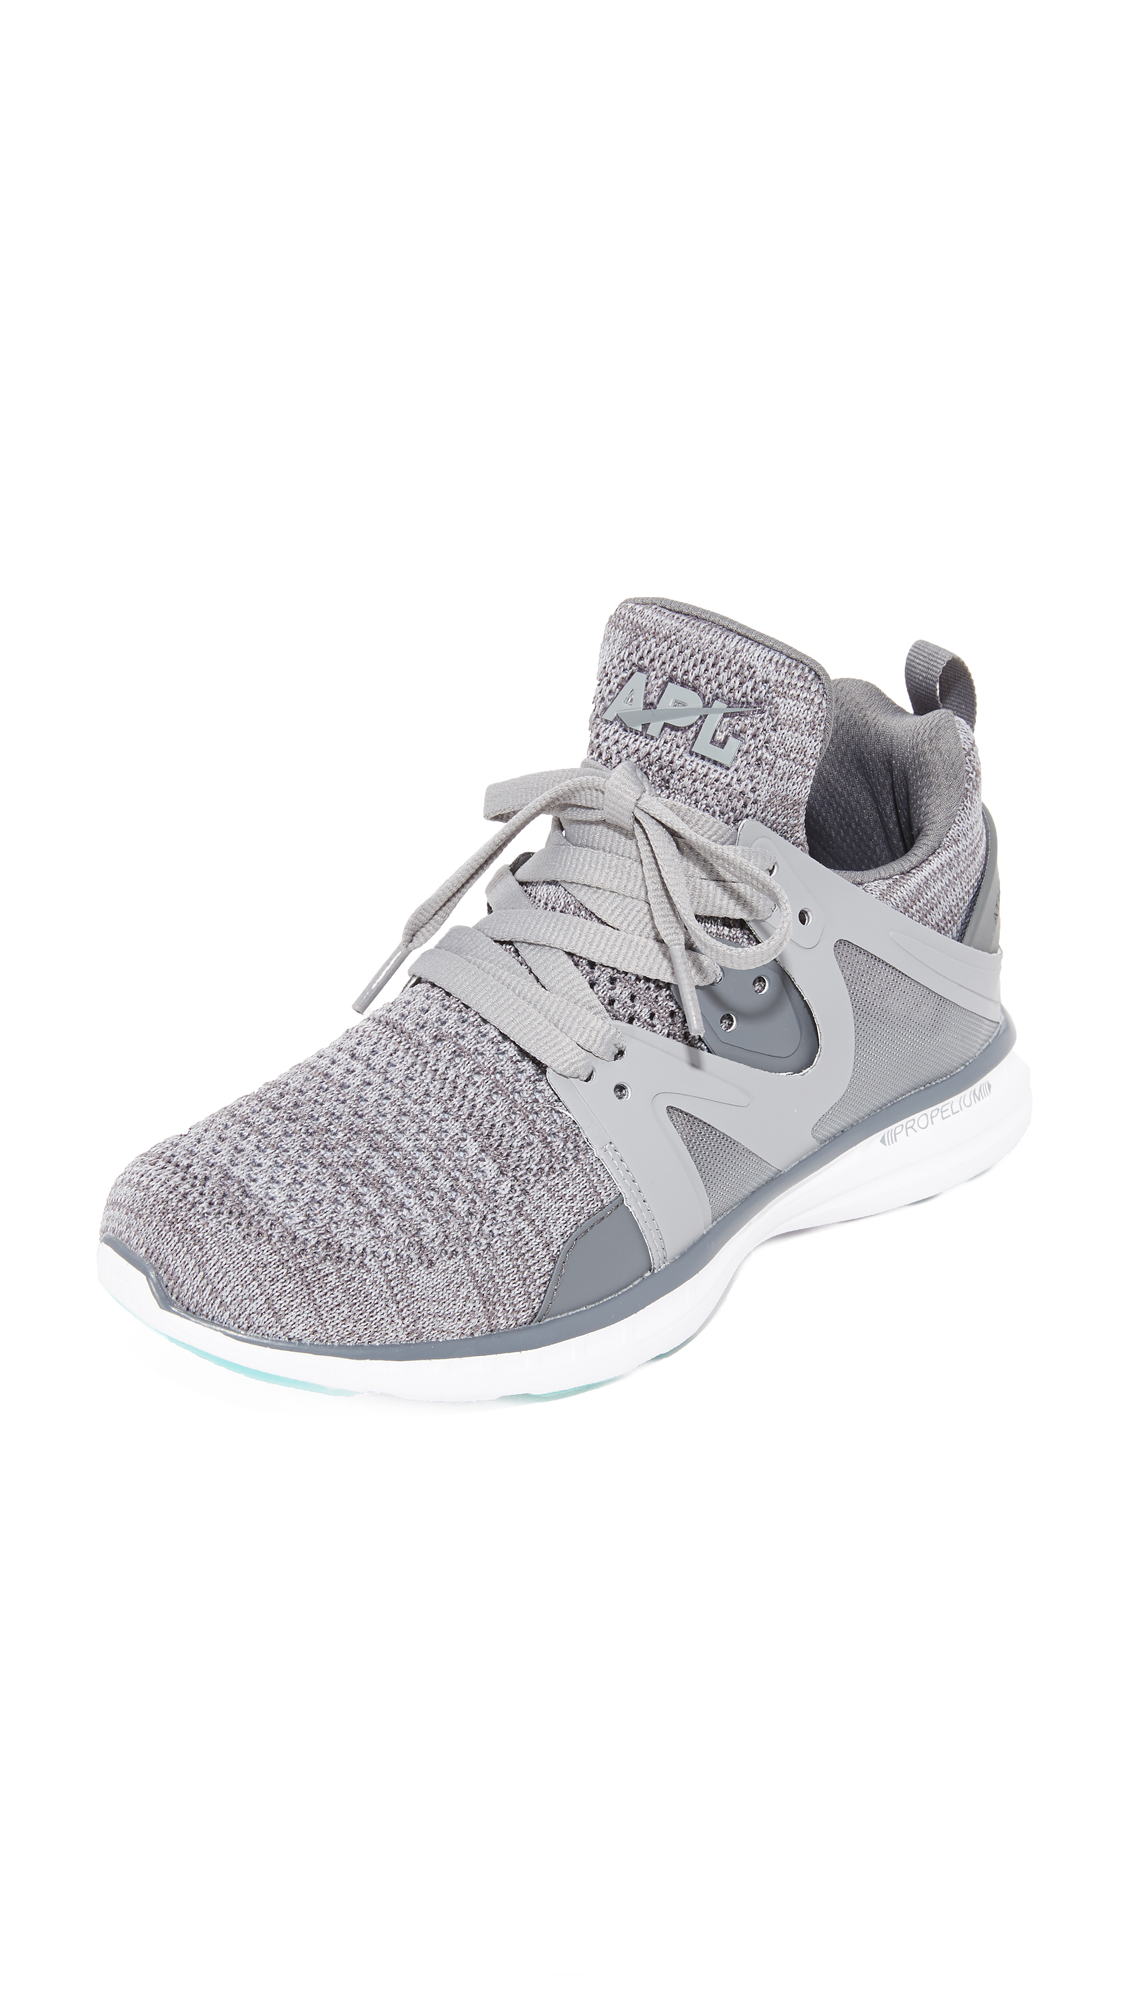 These APL: Athletic Propulsion Labs sneakers are made from heathered mesh and sculpted rubber panels. Padded top line and pull tab at the heel. Lace up closure. Foam platform and rubber sole. Fabric: Mesh. Imported, China.